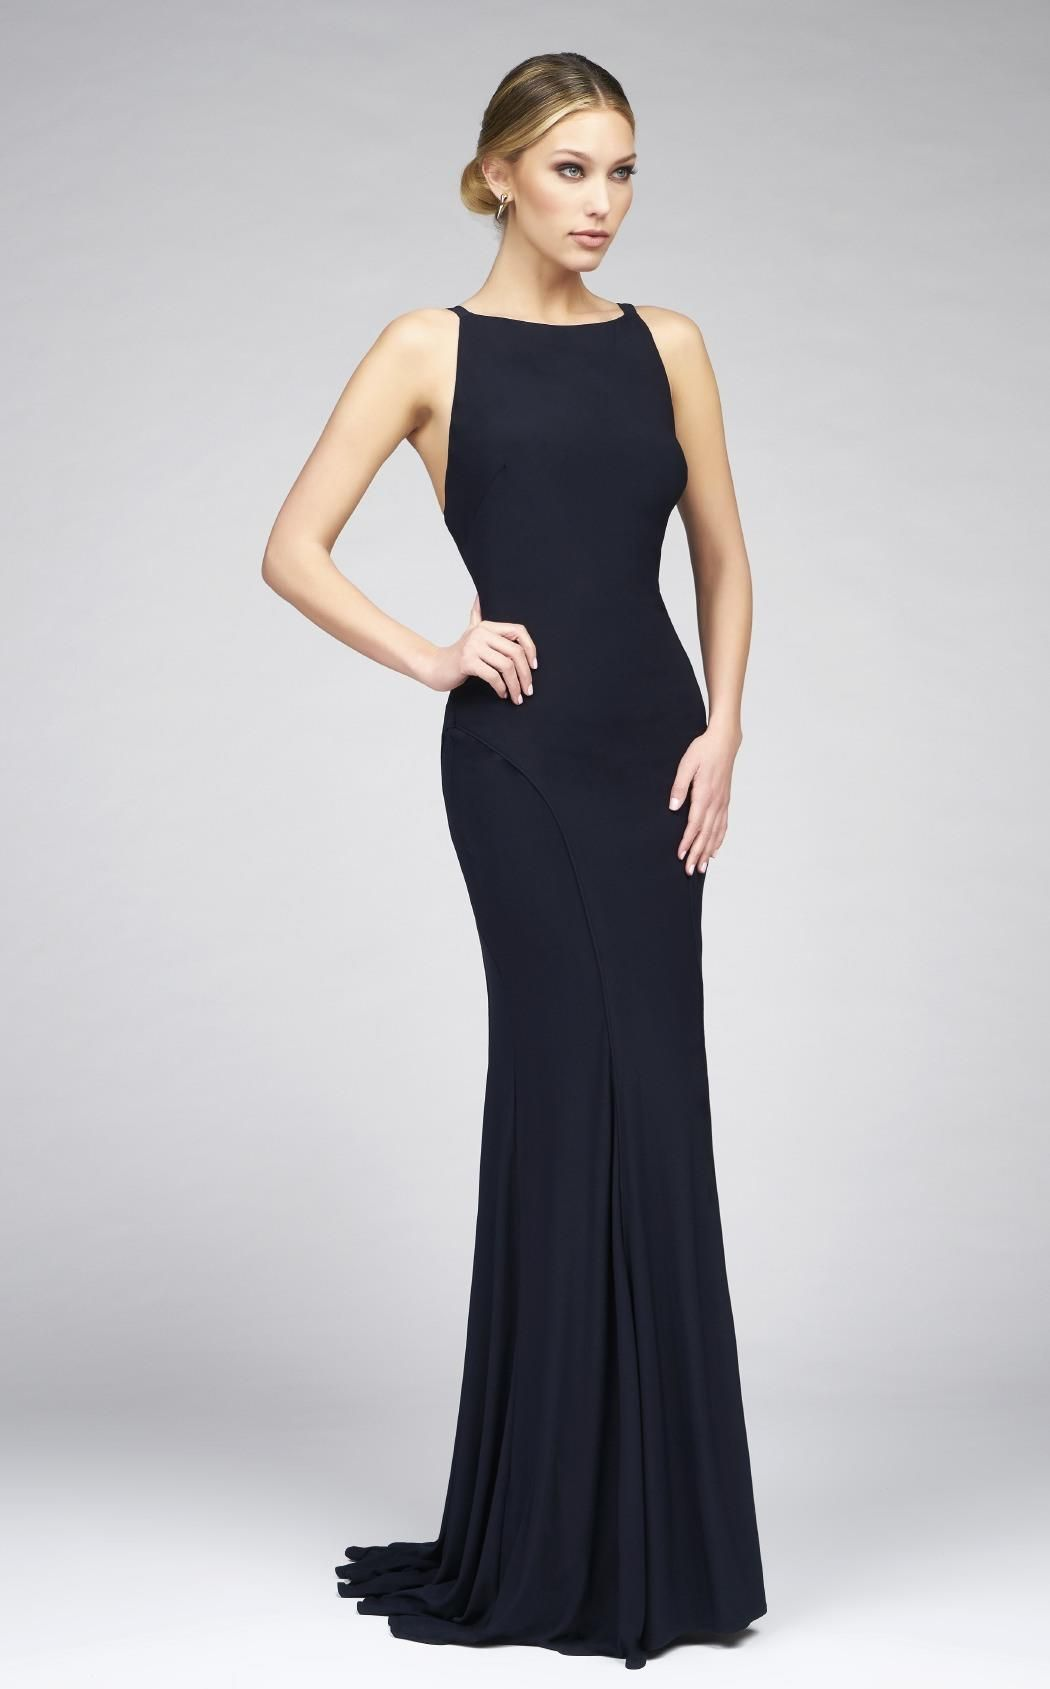 5a2a0dac5bcc All eyes will be on you in this classy evening dress by Ieena for Mac Duggal  25220I. The sleeveless bodice has a bateau neckline and plunging open back  for ...